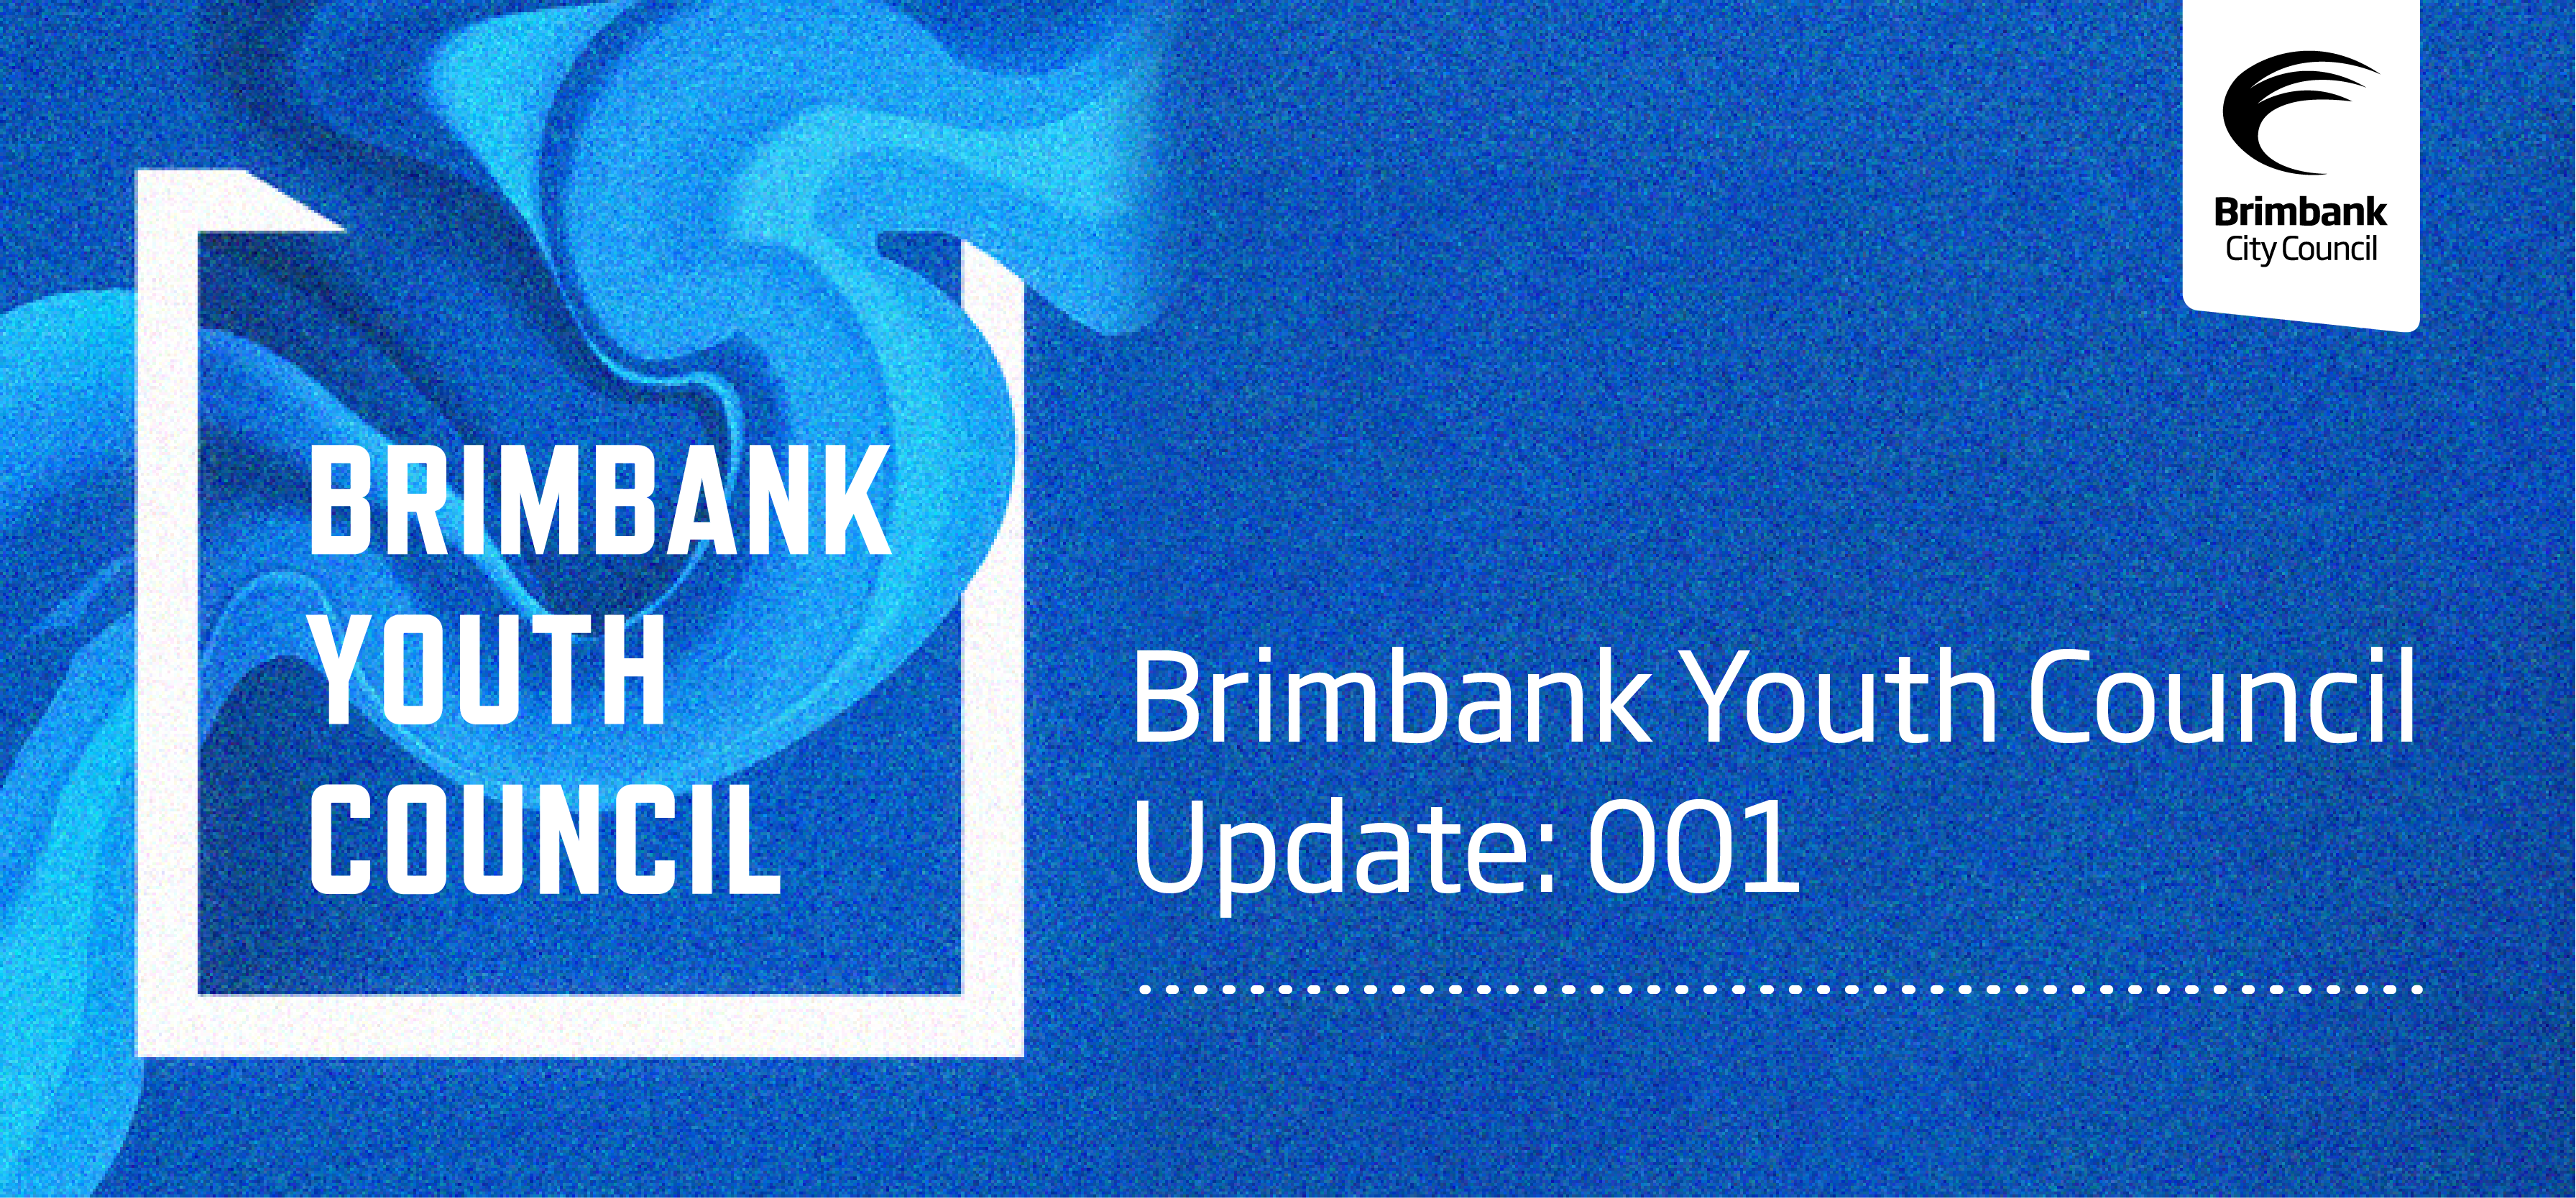 Brimbank Youth Council Update 001